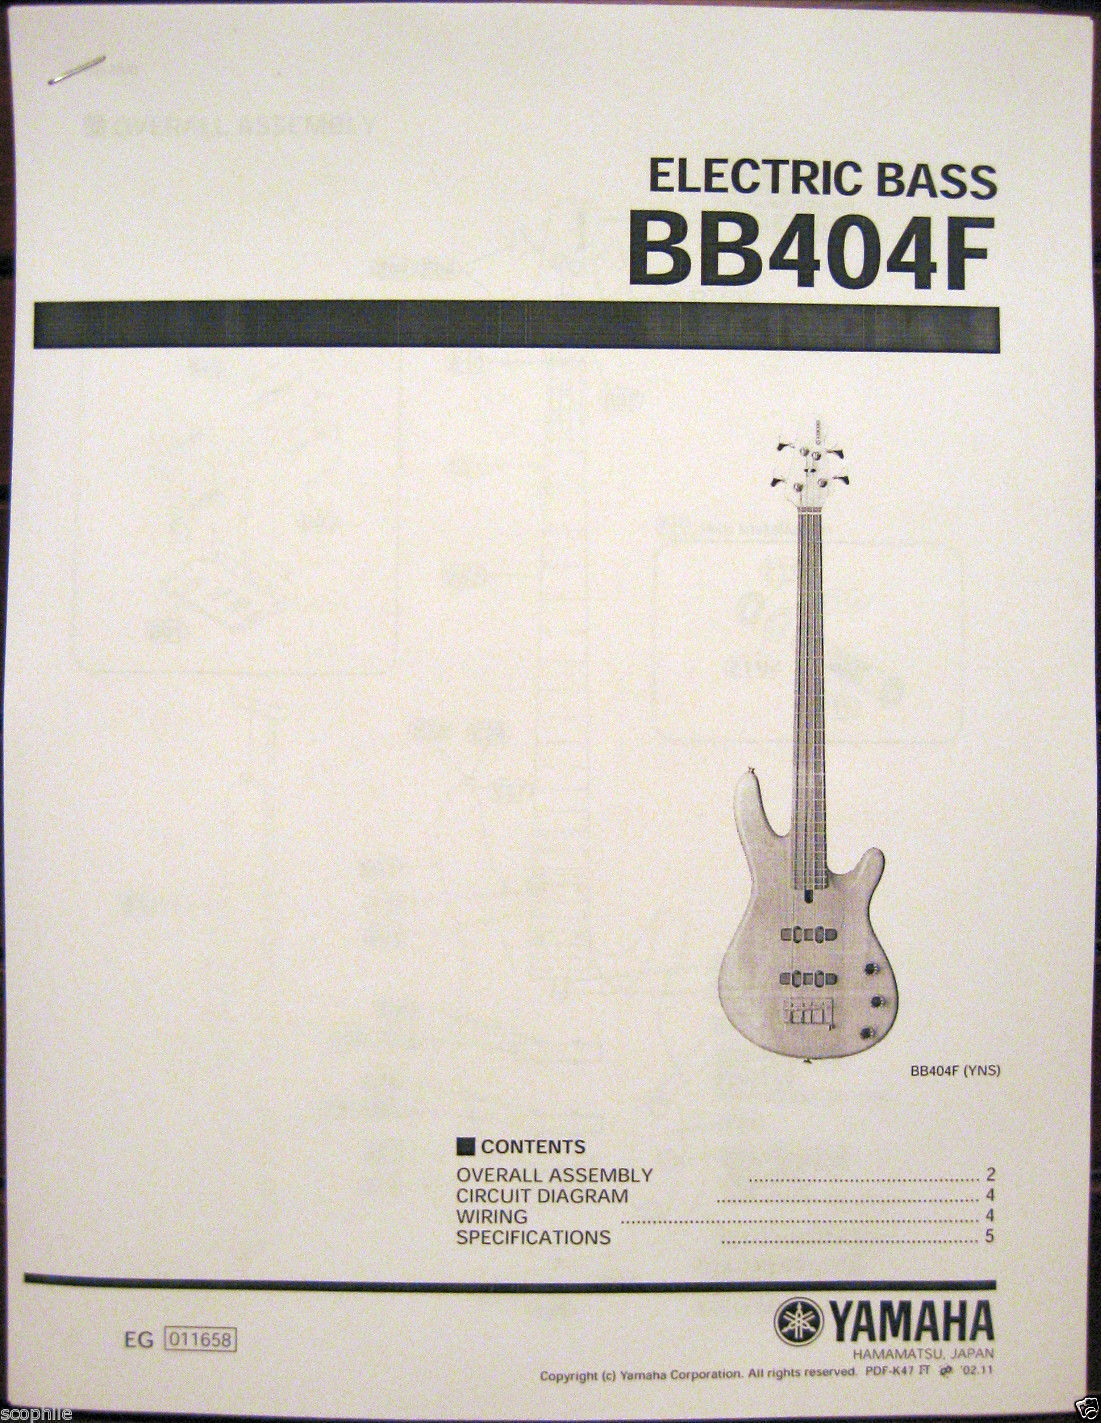 Yamaha BB404F Fretless Bass Guitar Service and 44 similar items